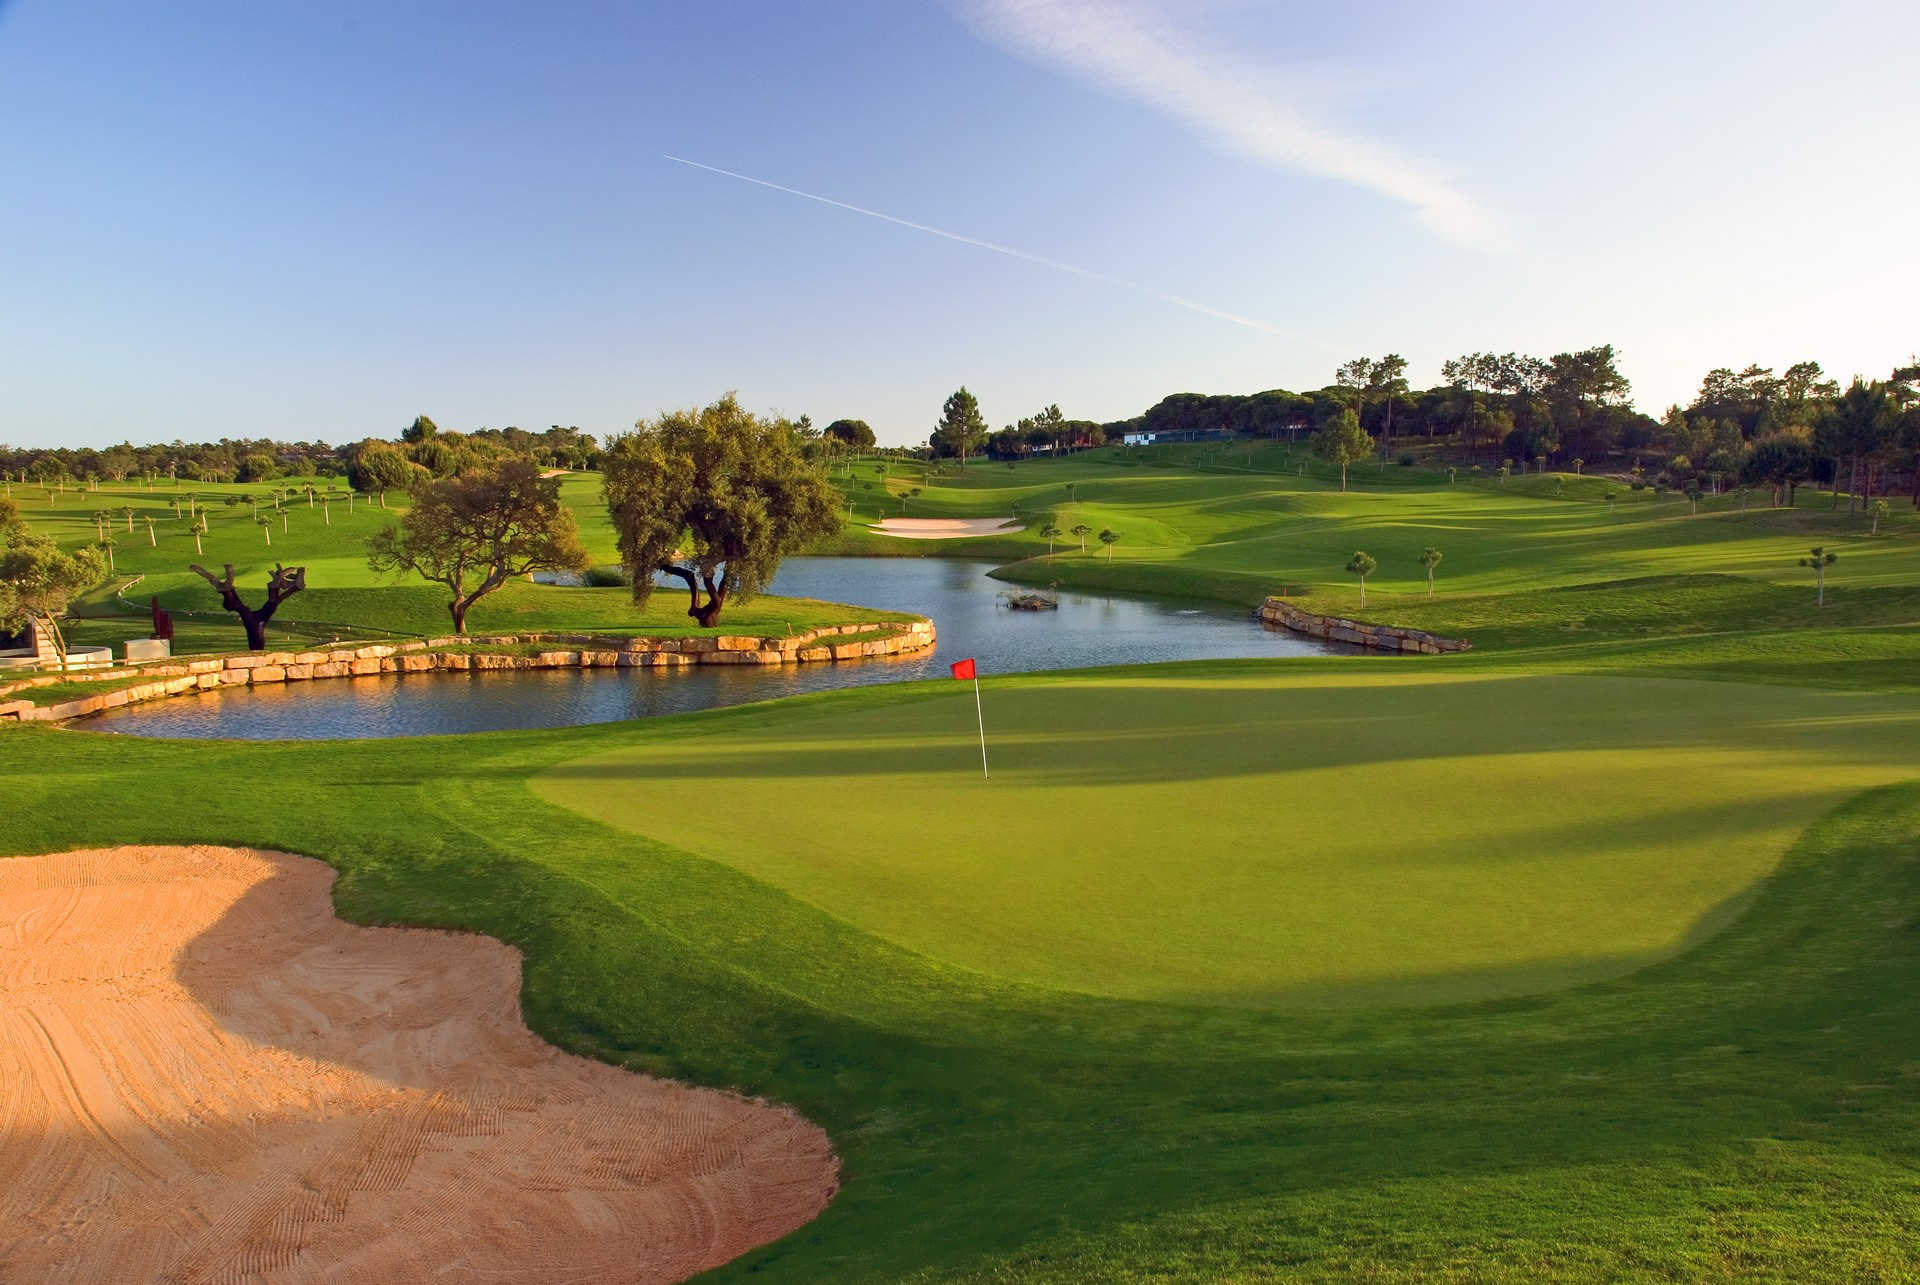 portuguese golf clubs Portuguese golf clubs: The perfect place for you to relax Portuguese golf clubs 5